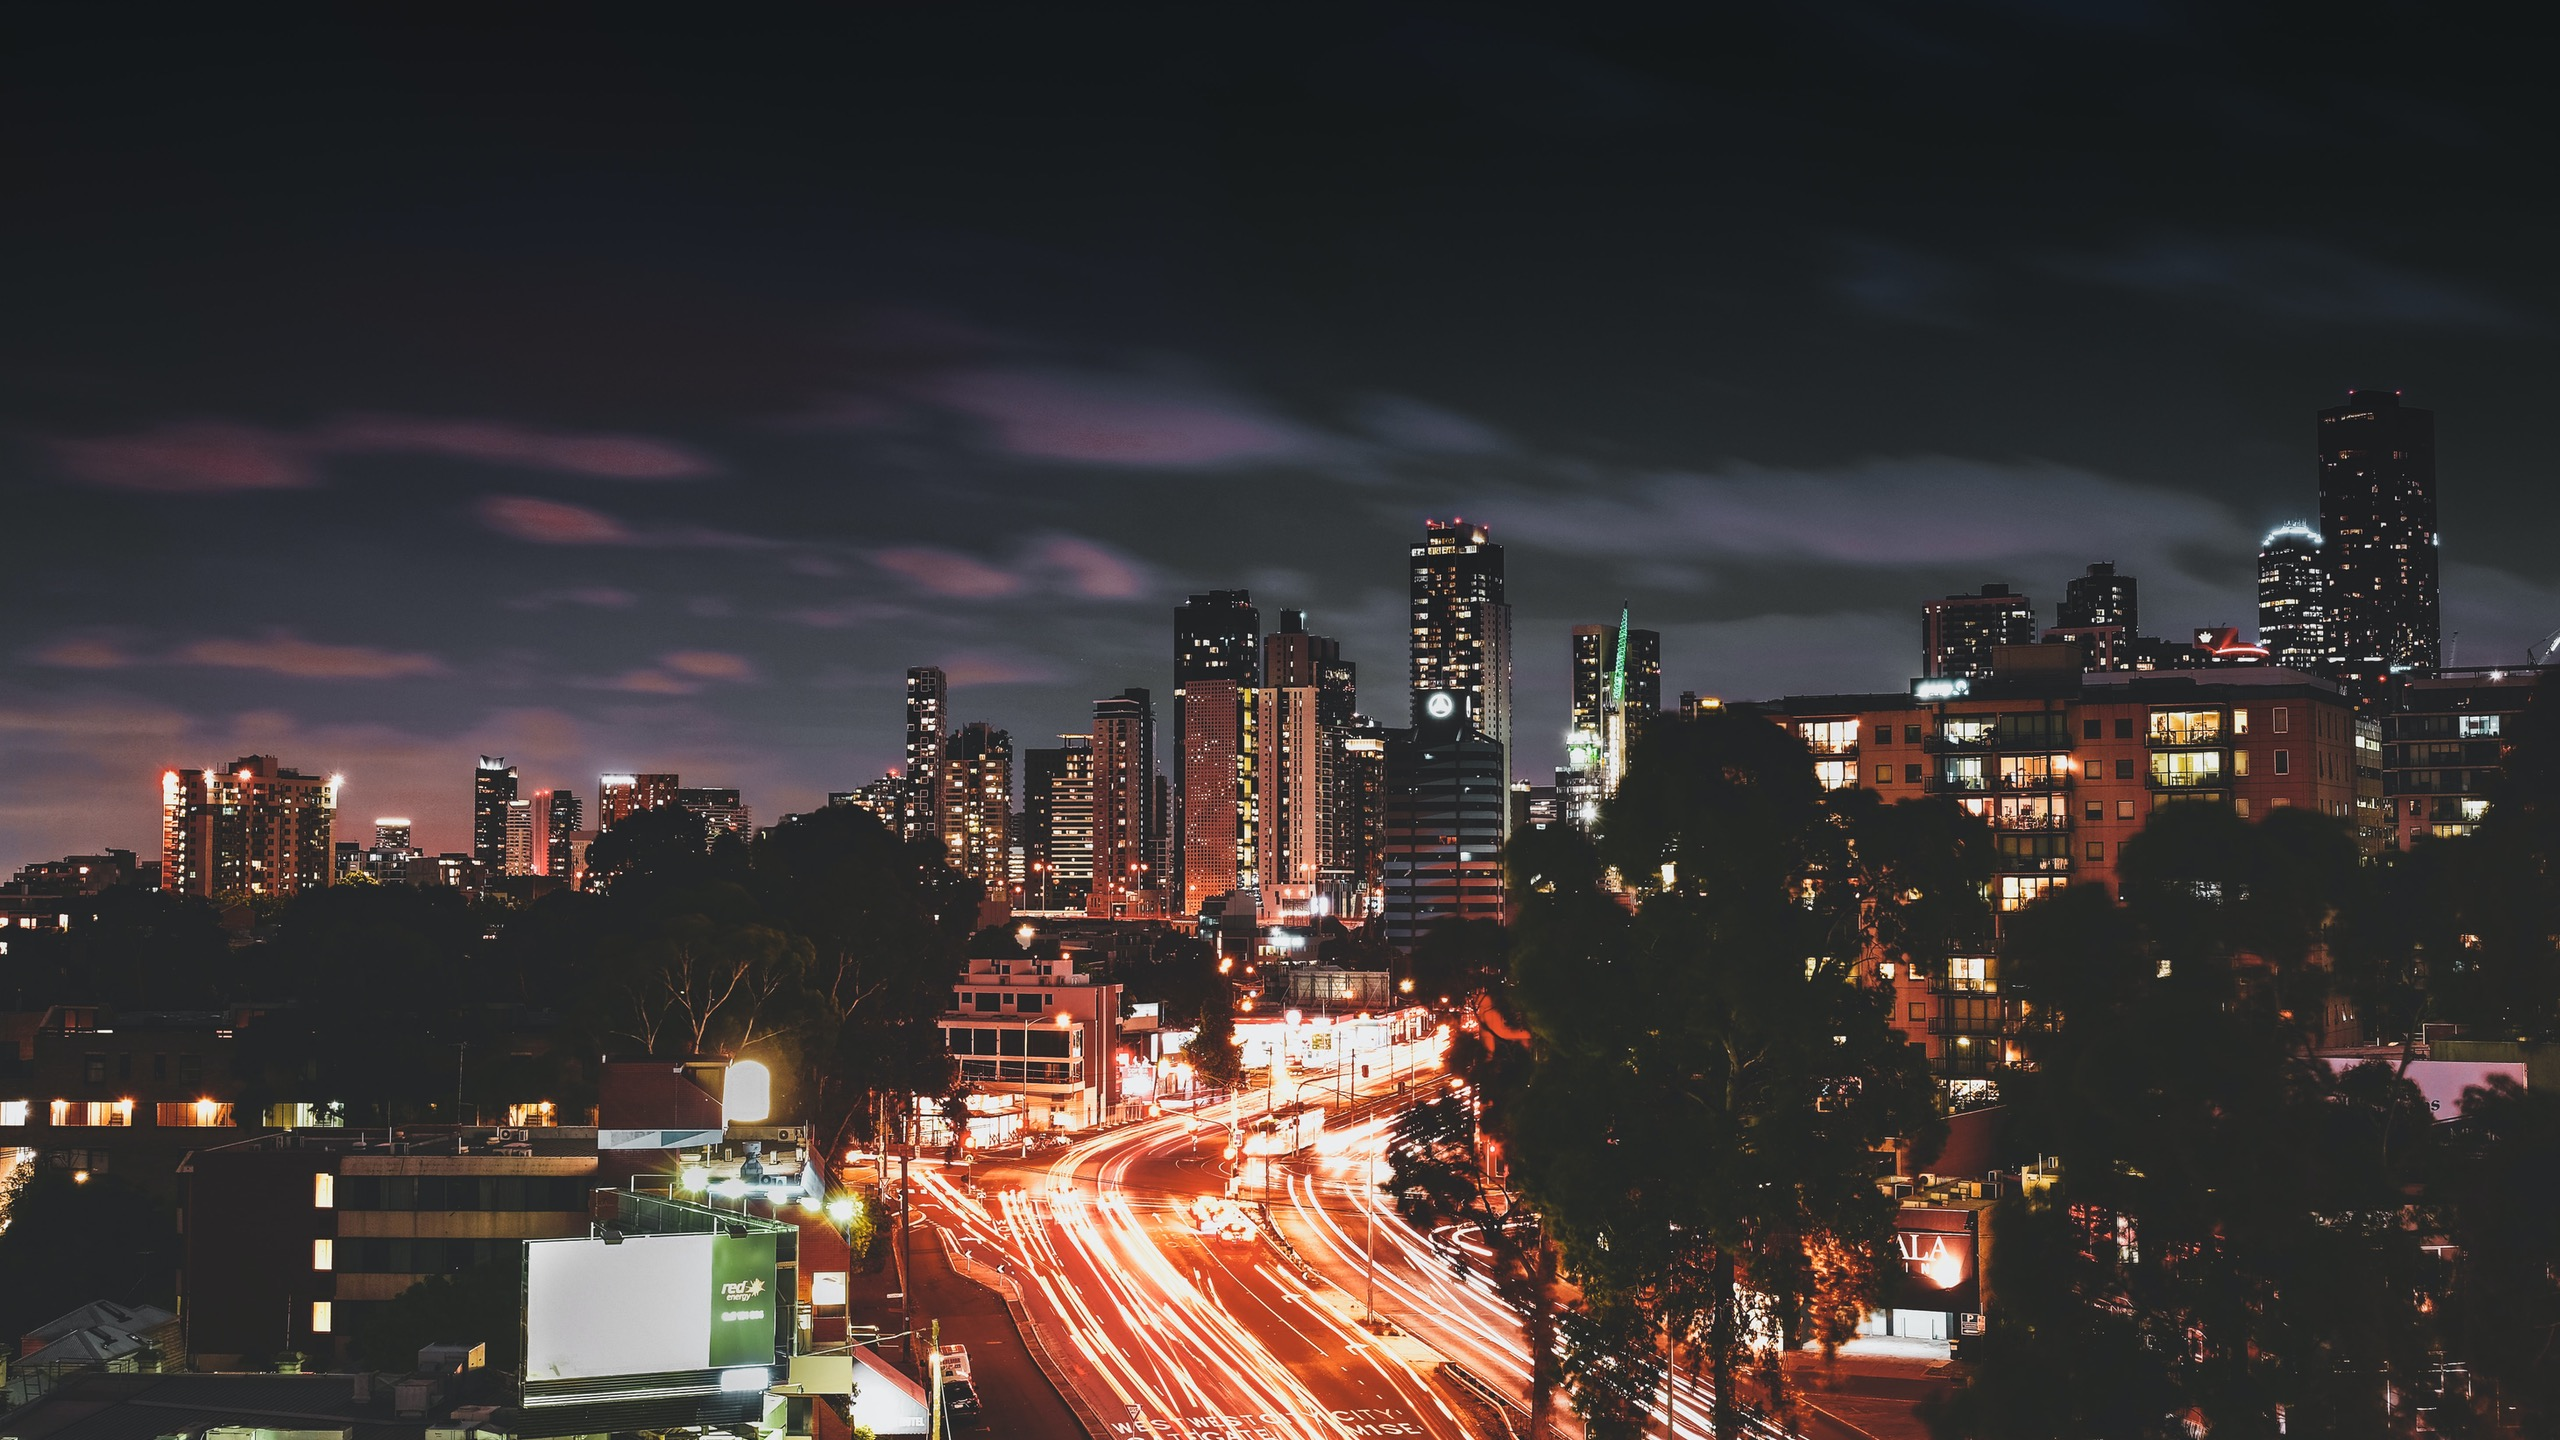 Long exposure photo at night of a freeway with the Melbourne cityscape in the background